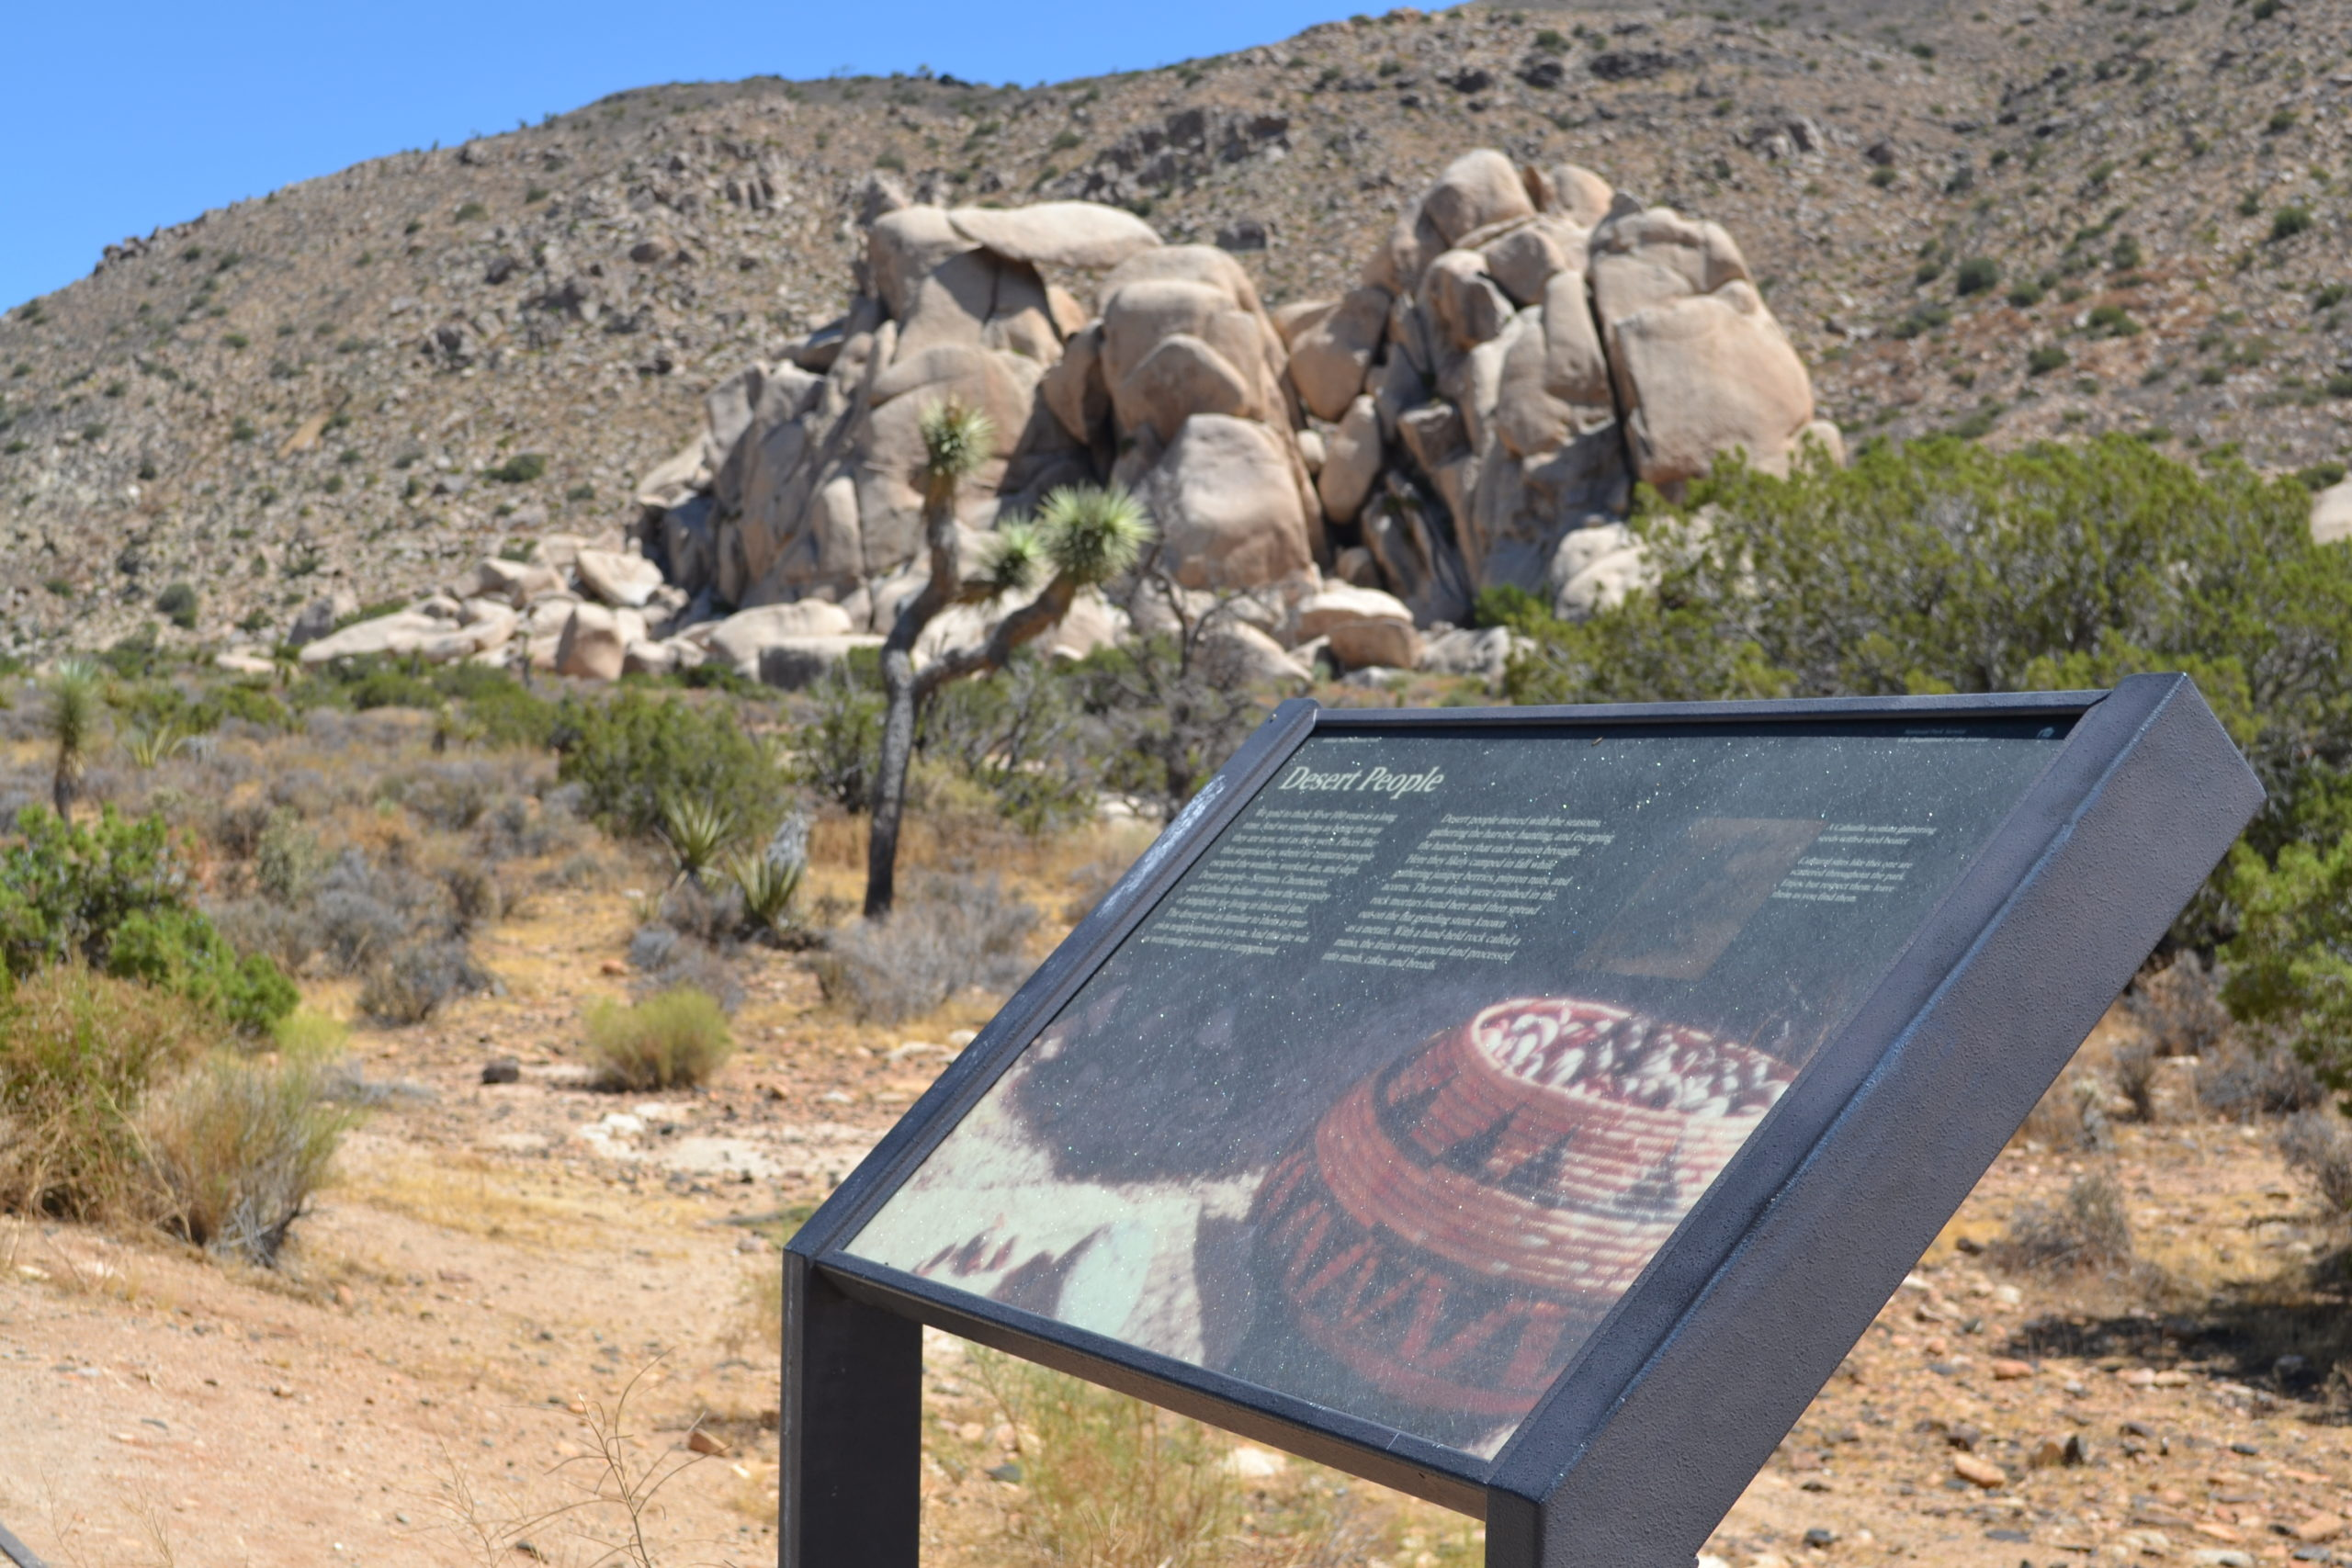 Desert-People-Plaque-Joshua-tree-national-park-adventure-tour-hiking-camping-climbing